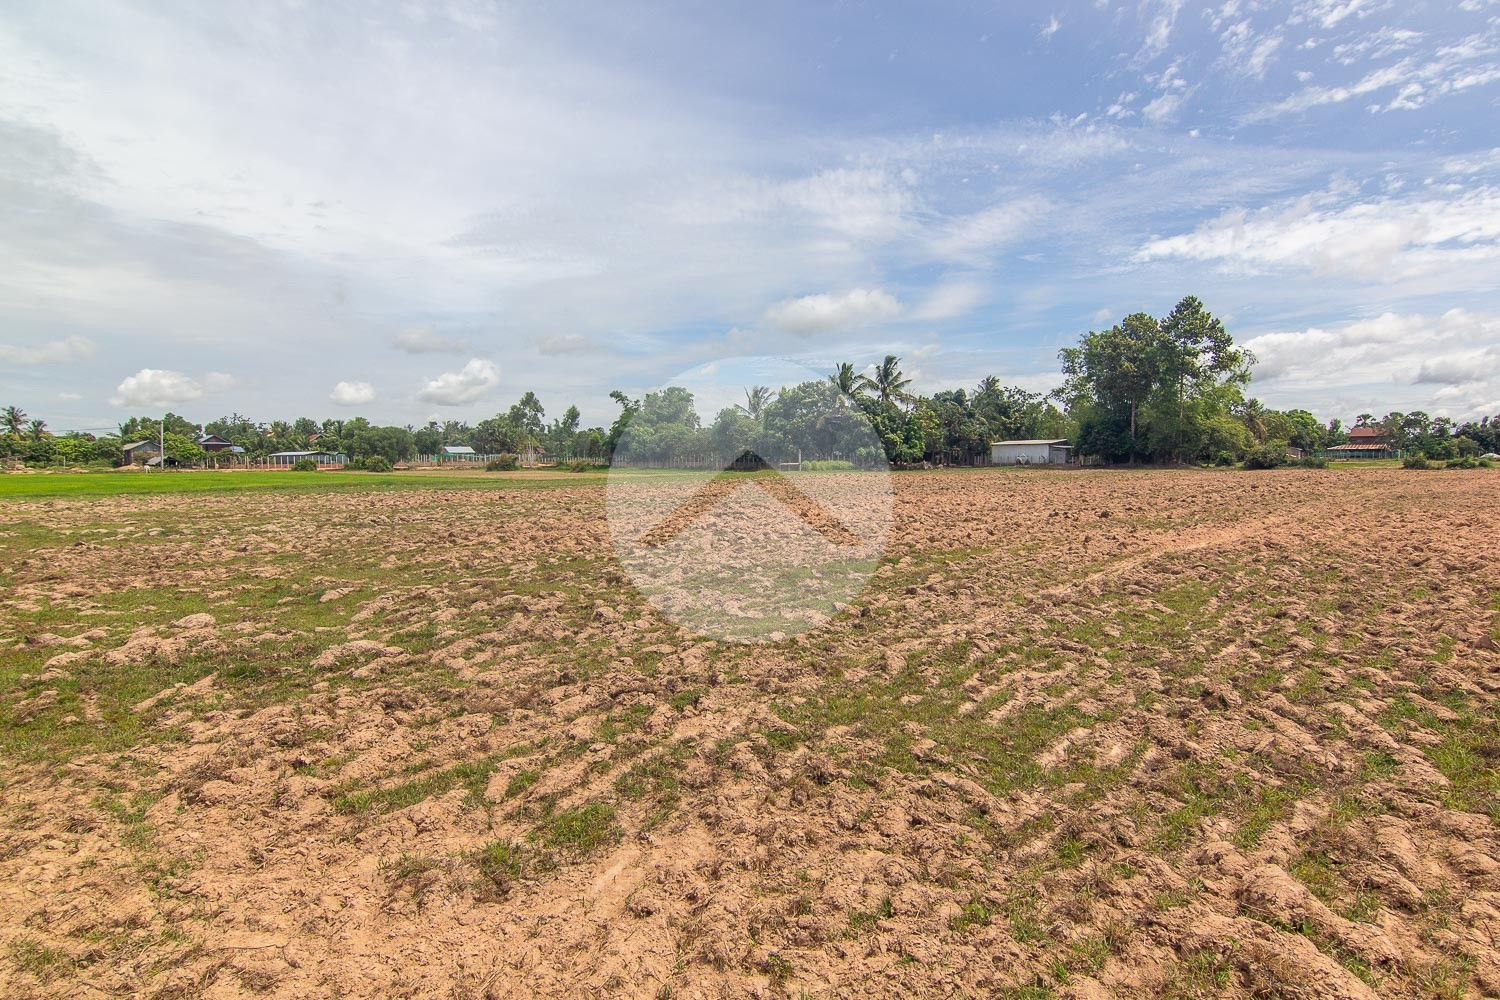 5344 Sqm Residential Land For Sale - Sambour, Siem Reap